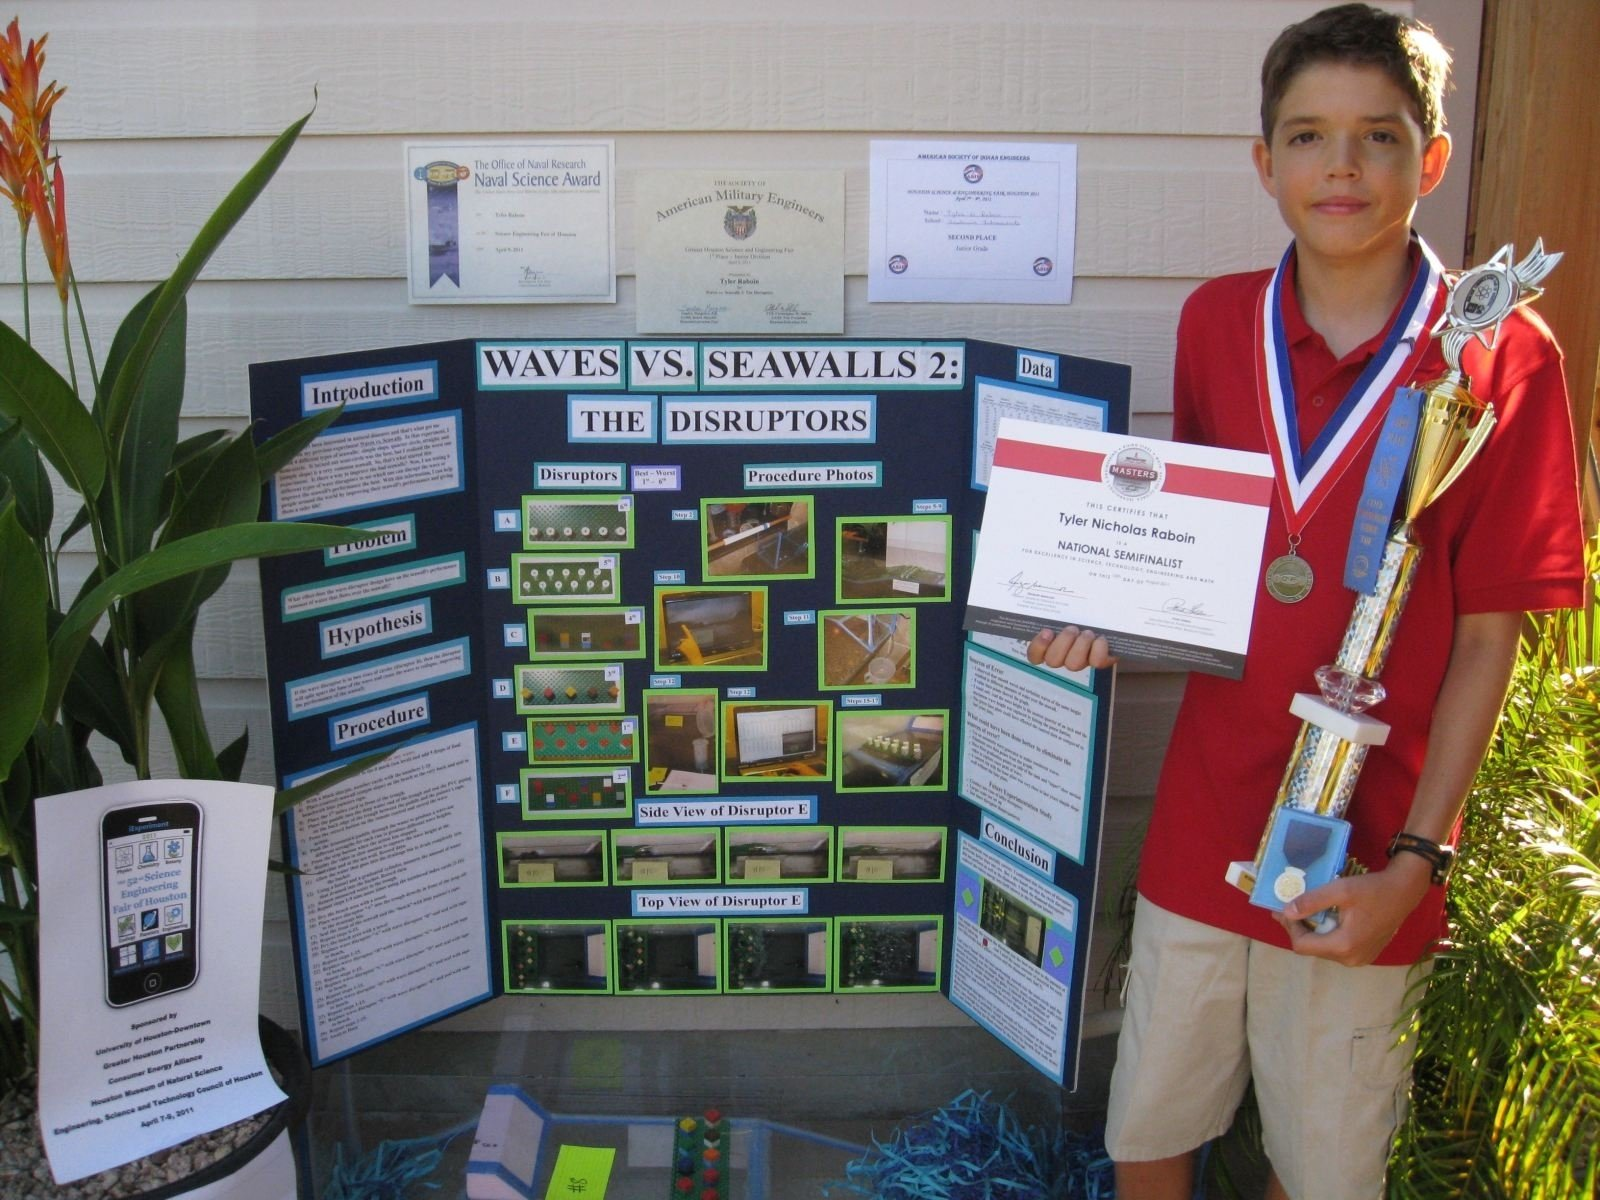 10 Famous Science Fair Projects Ideas For 4Th Graders science project gidiye redformapolitica co 15